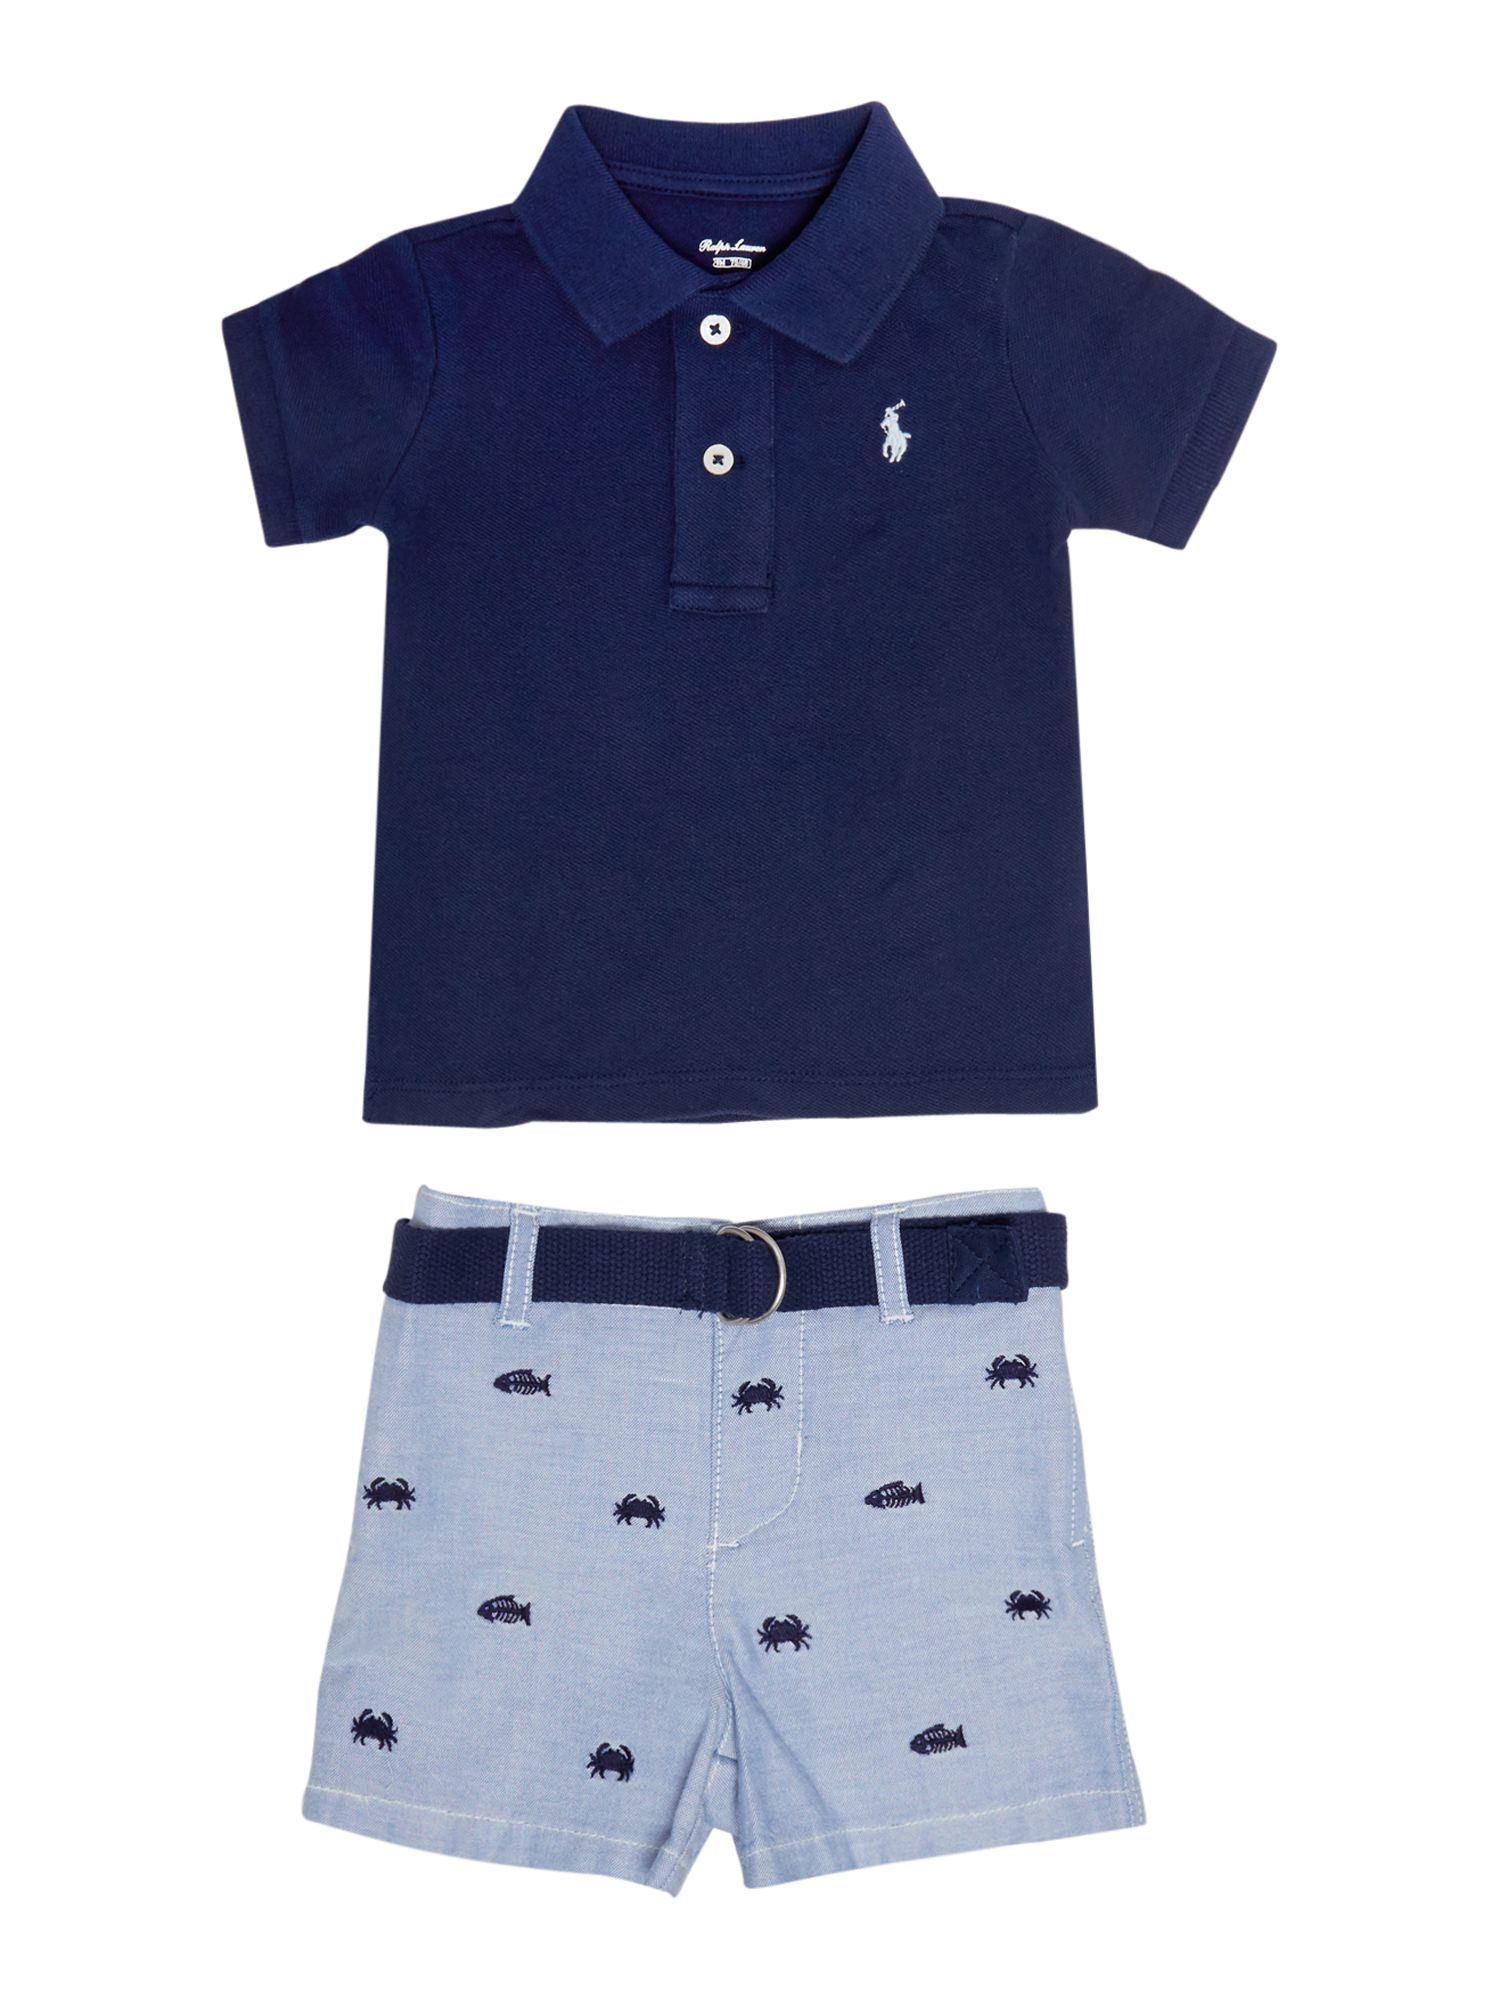 7520d81c7 Shoptagr | Baby Boys Small Pony Polo Shirt & Short Set by Polo Ralph ...